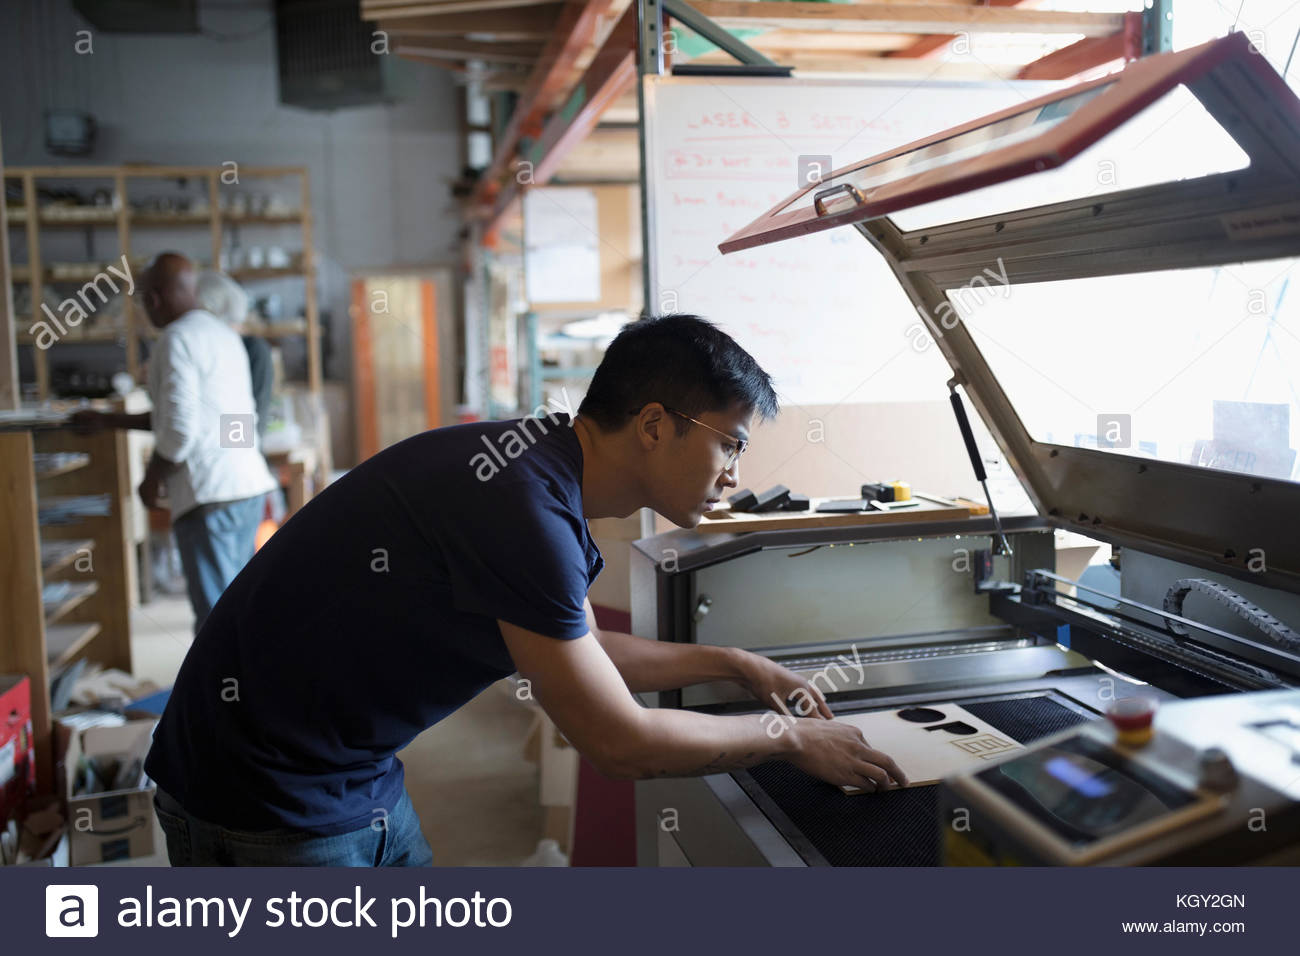 Male engineer using laser cutter in workshop - Stock Image